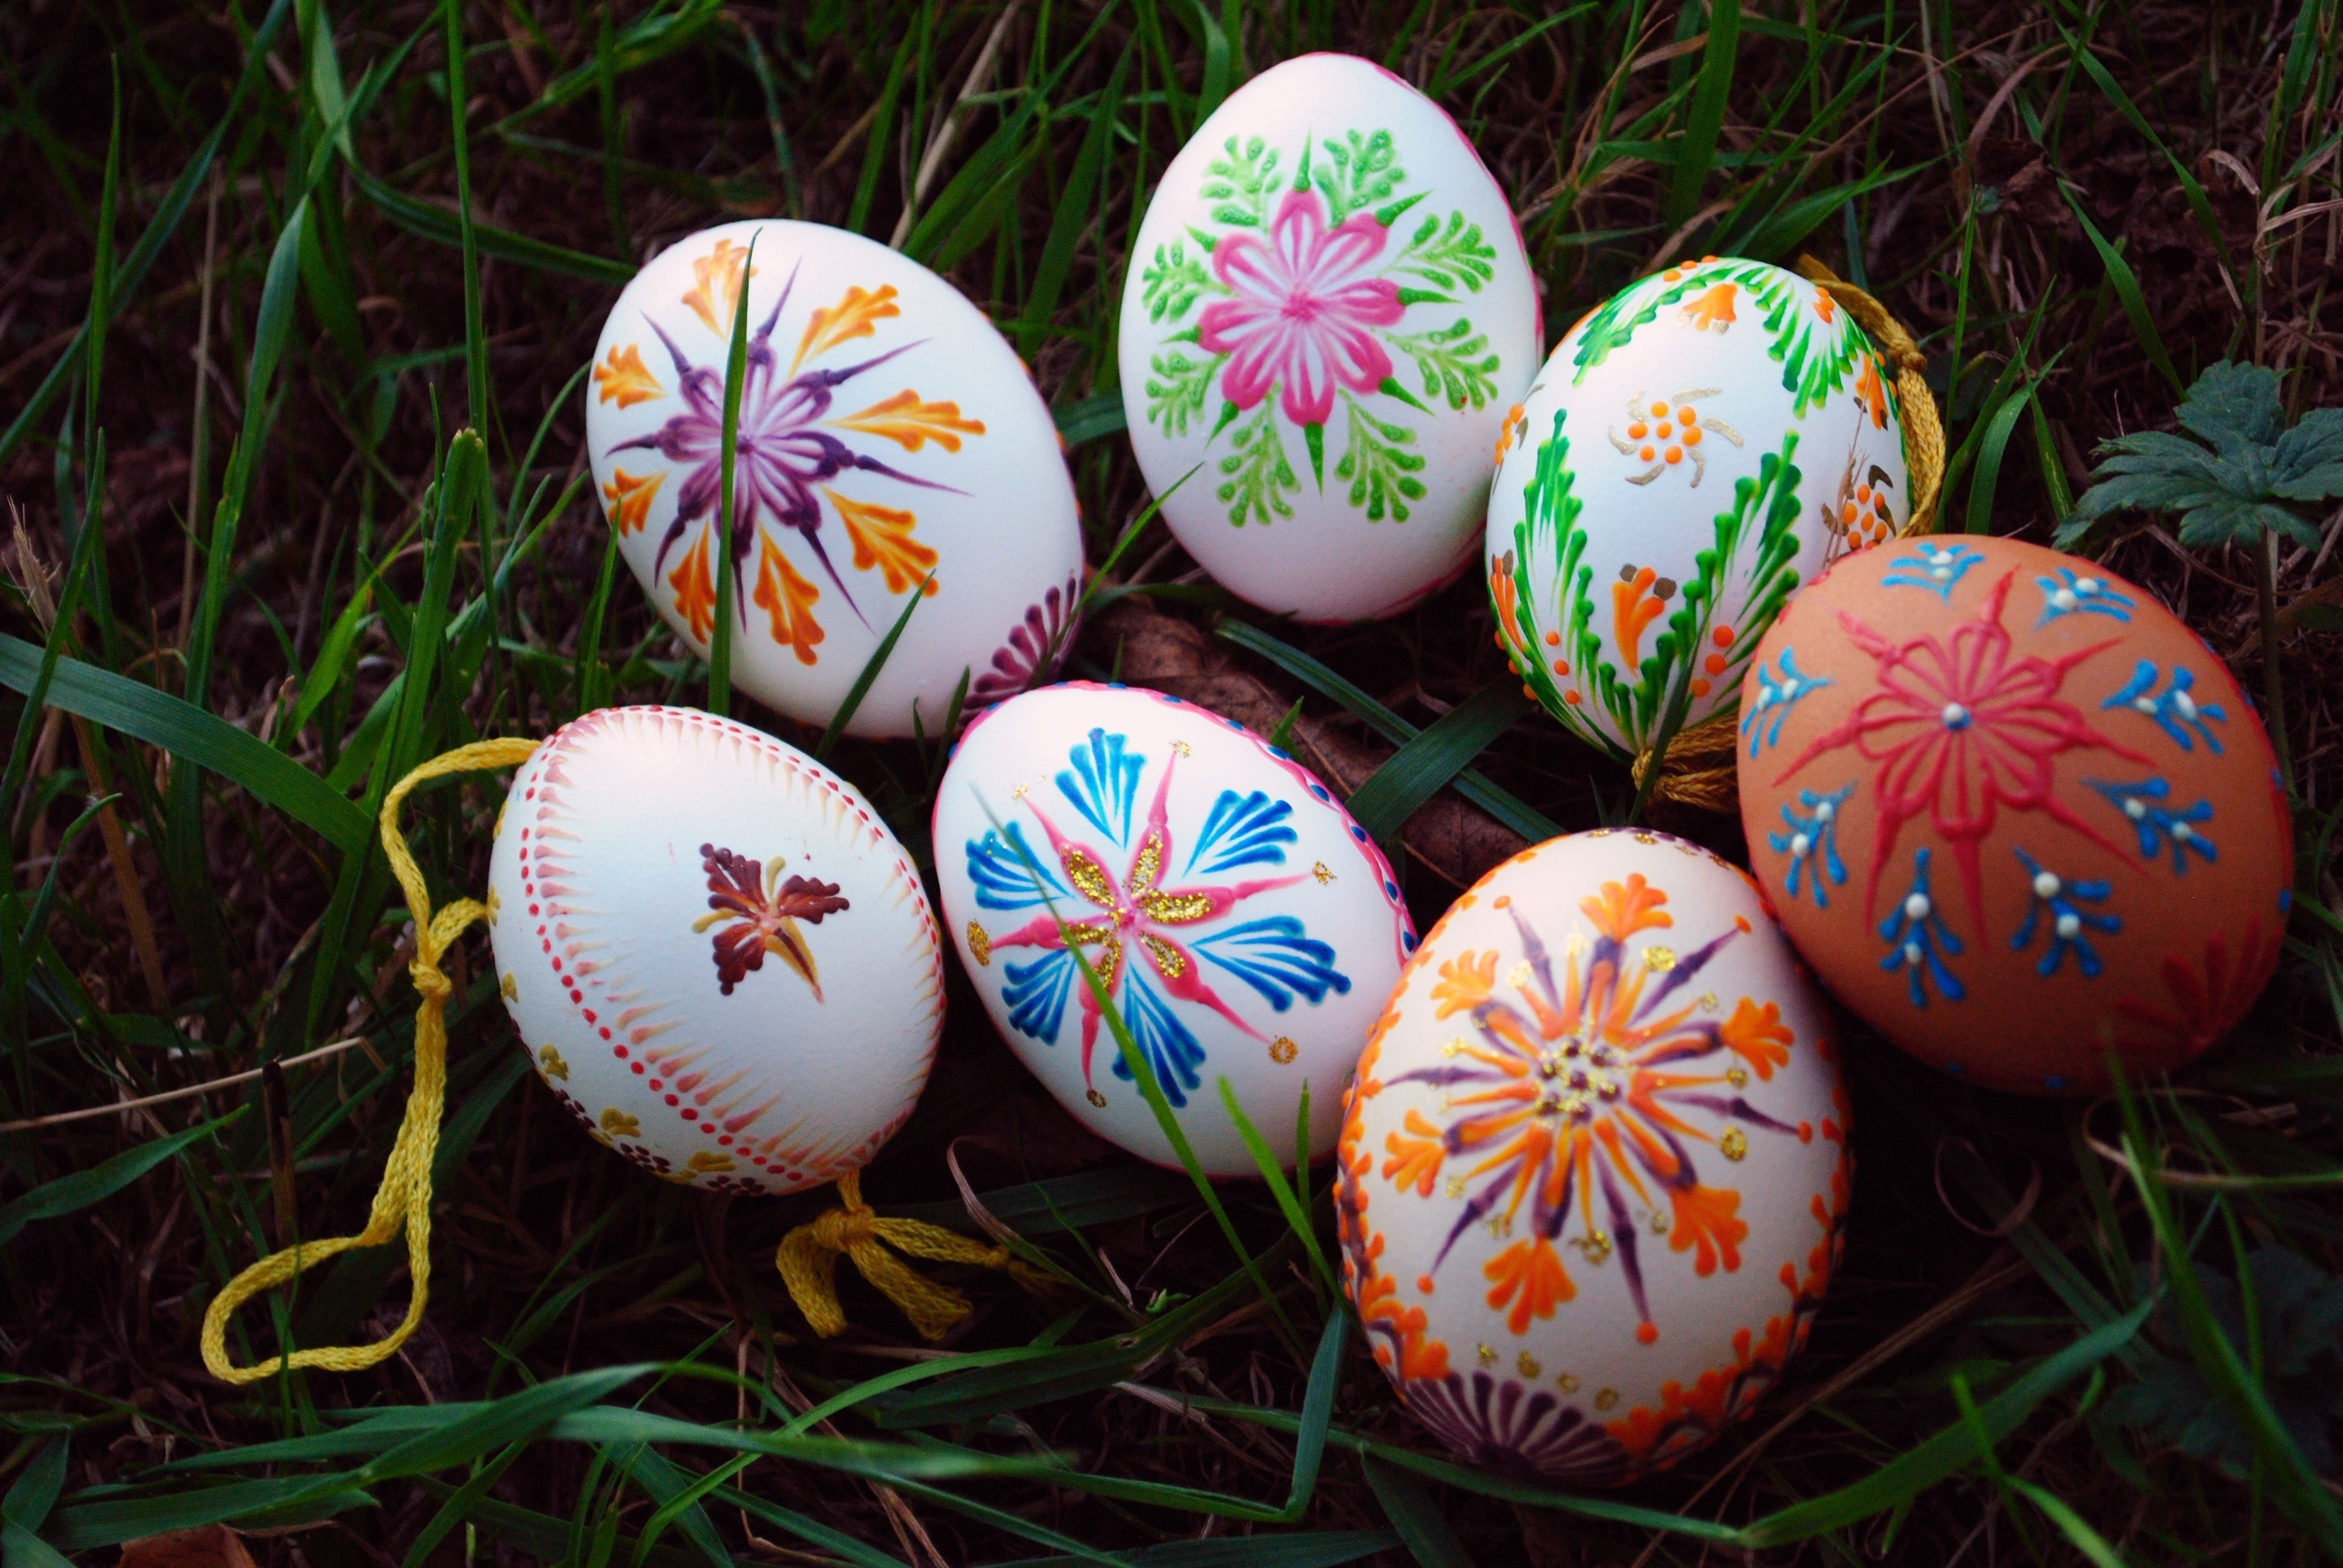 Slovak Easter Tradition Egg Painting Free Tutorial With Pictures On How To Make A